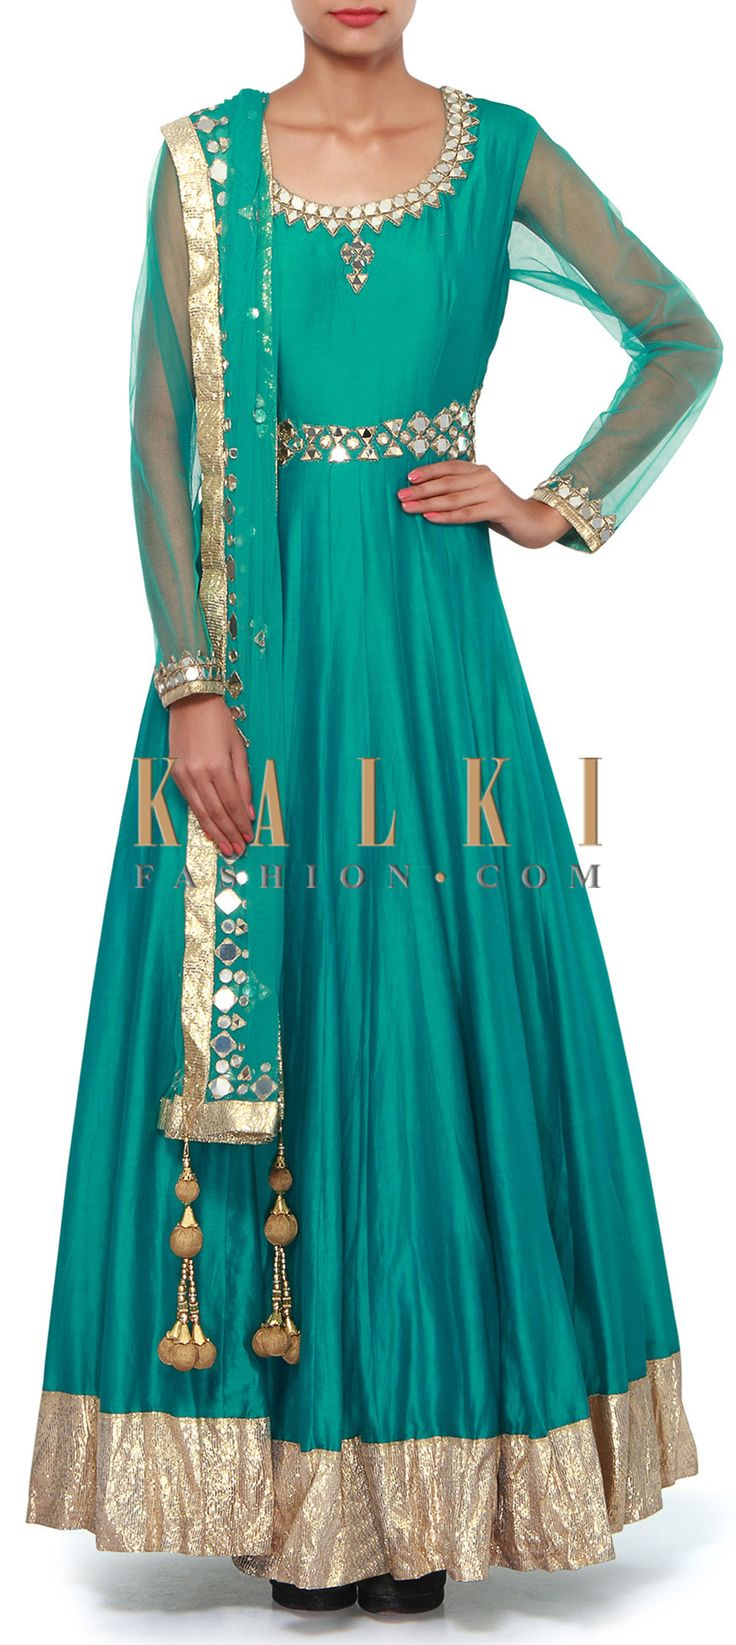 Buy Online from the link below. We ship worldwide (Free Shipping over US$100). Product SKU - 308410.Product Link - http://www.kalkifashion.com/teal-anarkali-suit-featuring-in-mirror-and-zari-embroidery-only-on-kalki.html